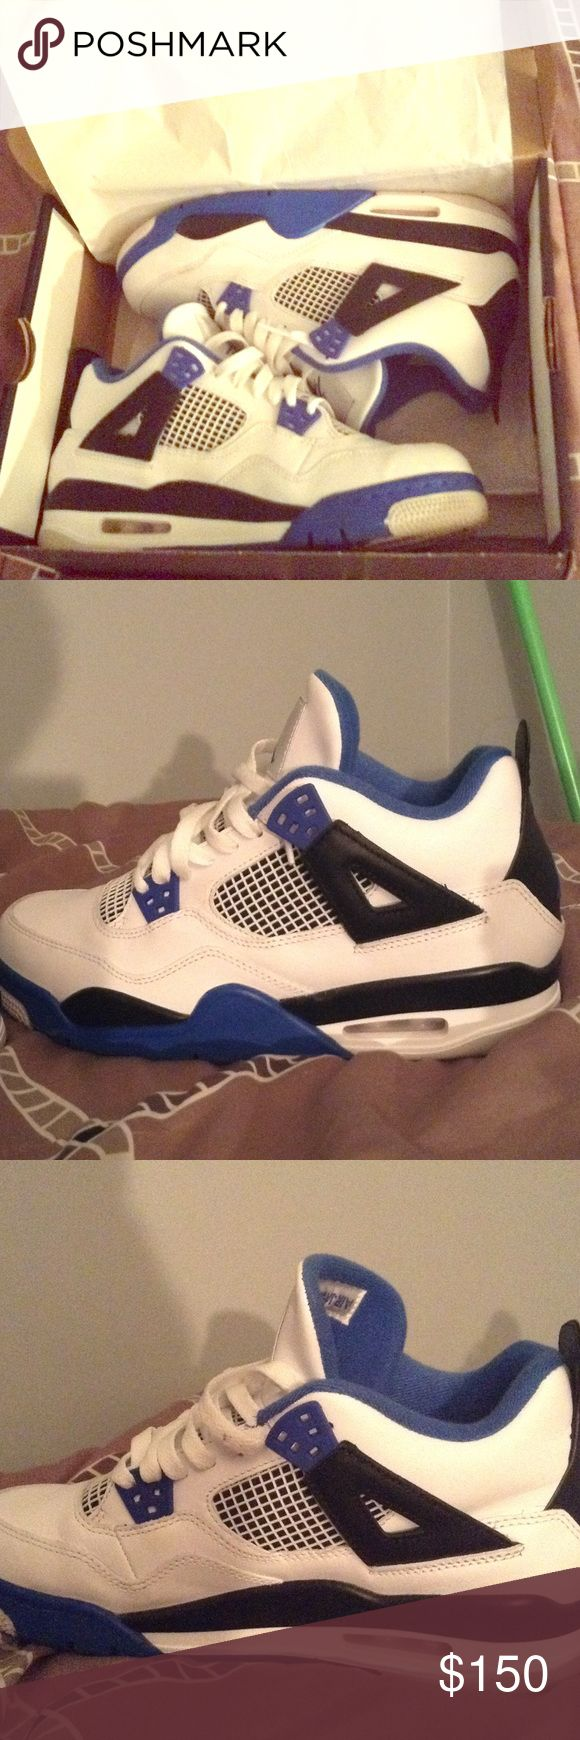 Motorsport 4's size 7 9/10 condition worn 3 times looking to trade or buy Jordan Shoes Athletic Shoes